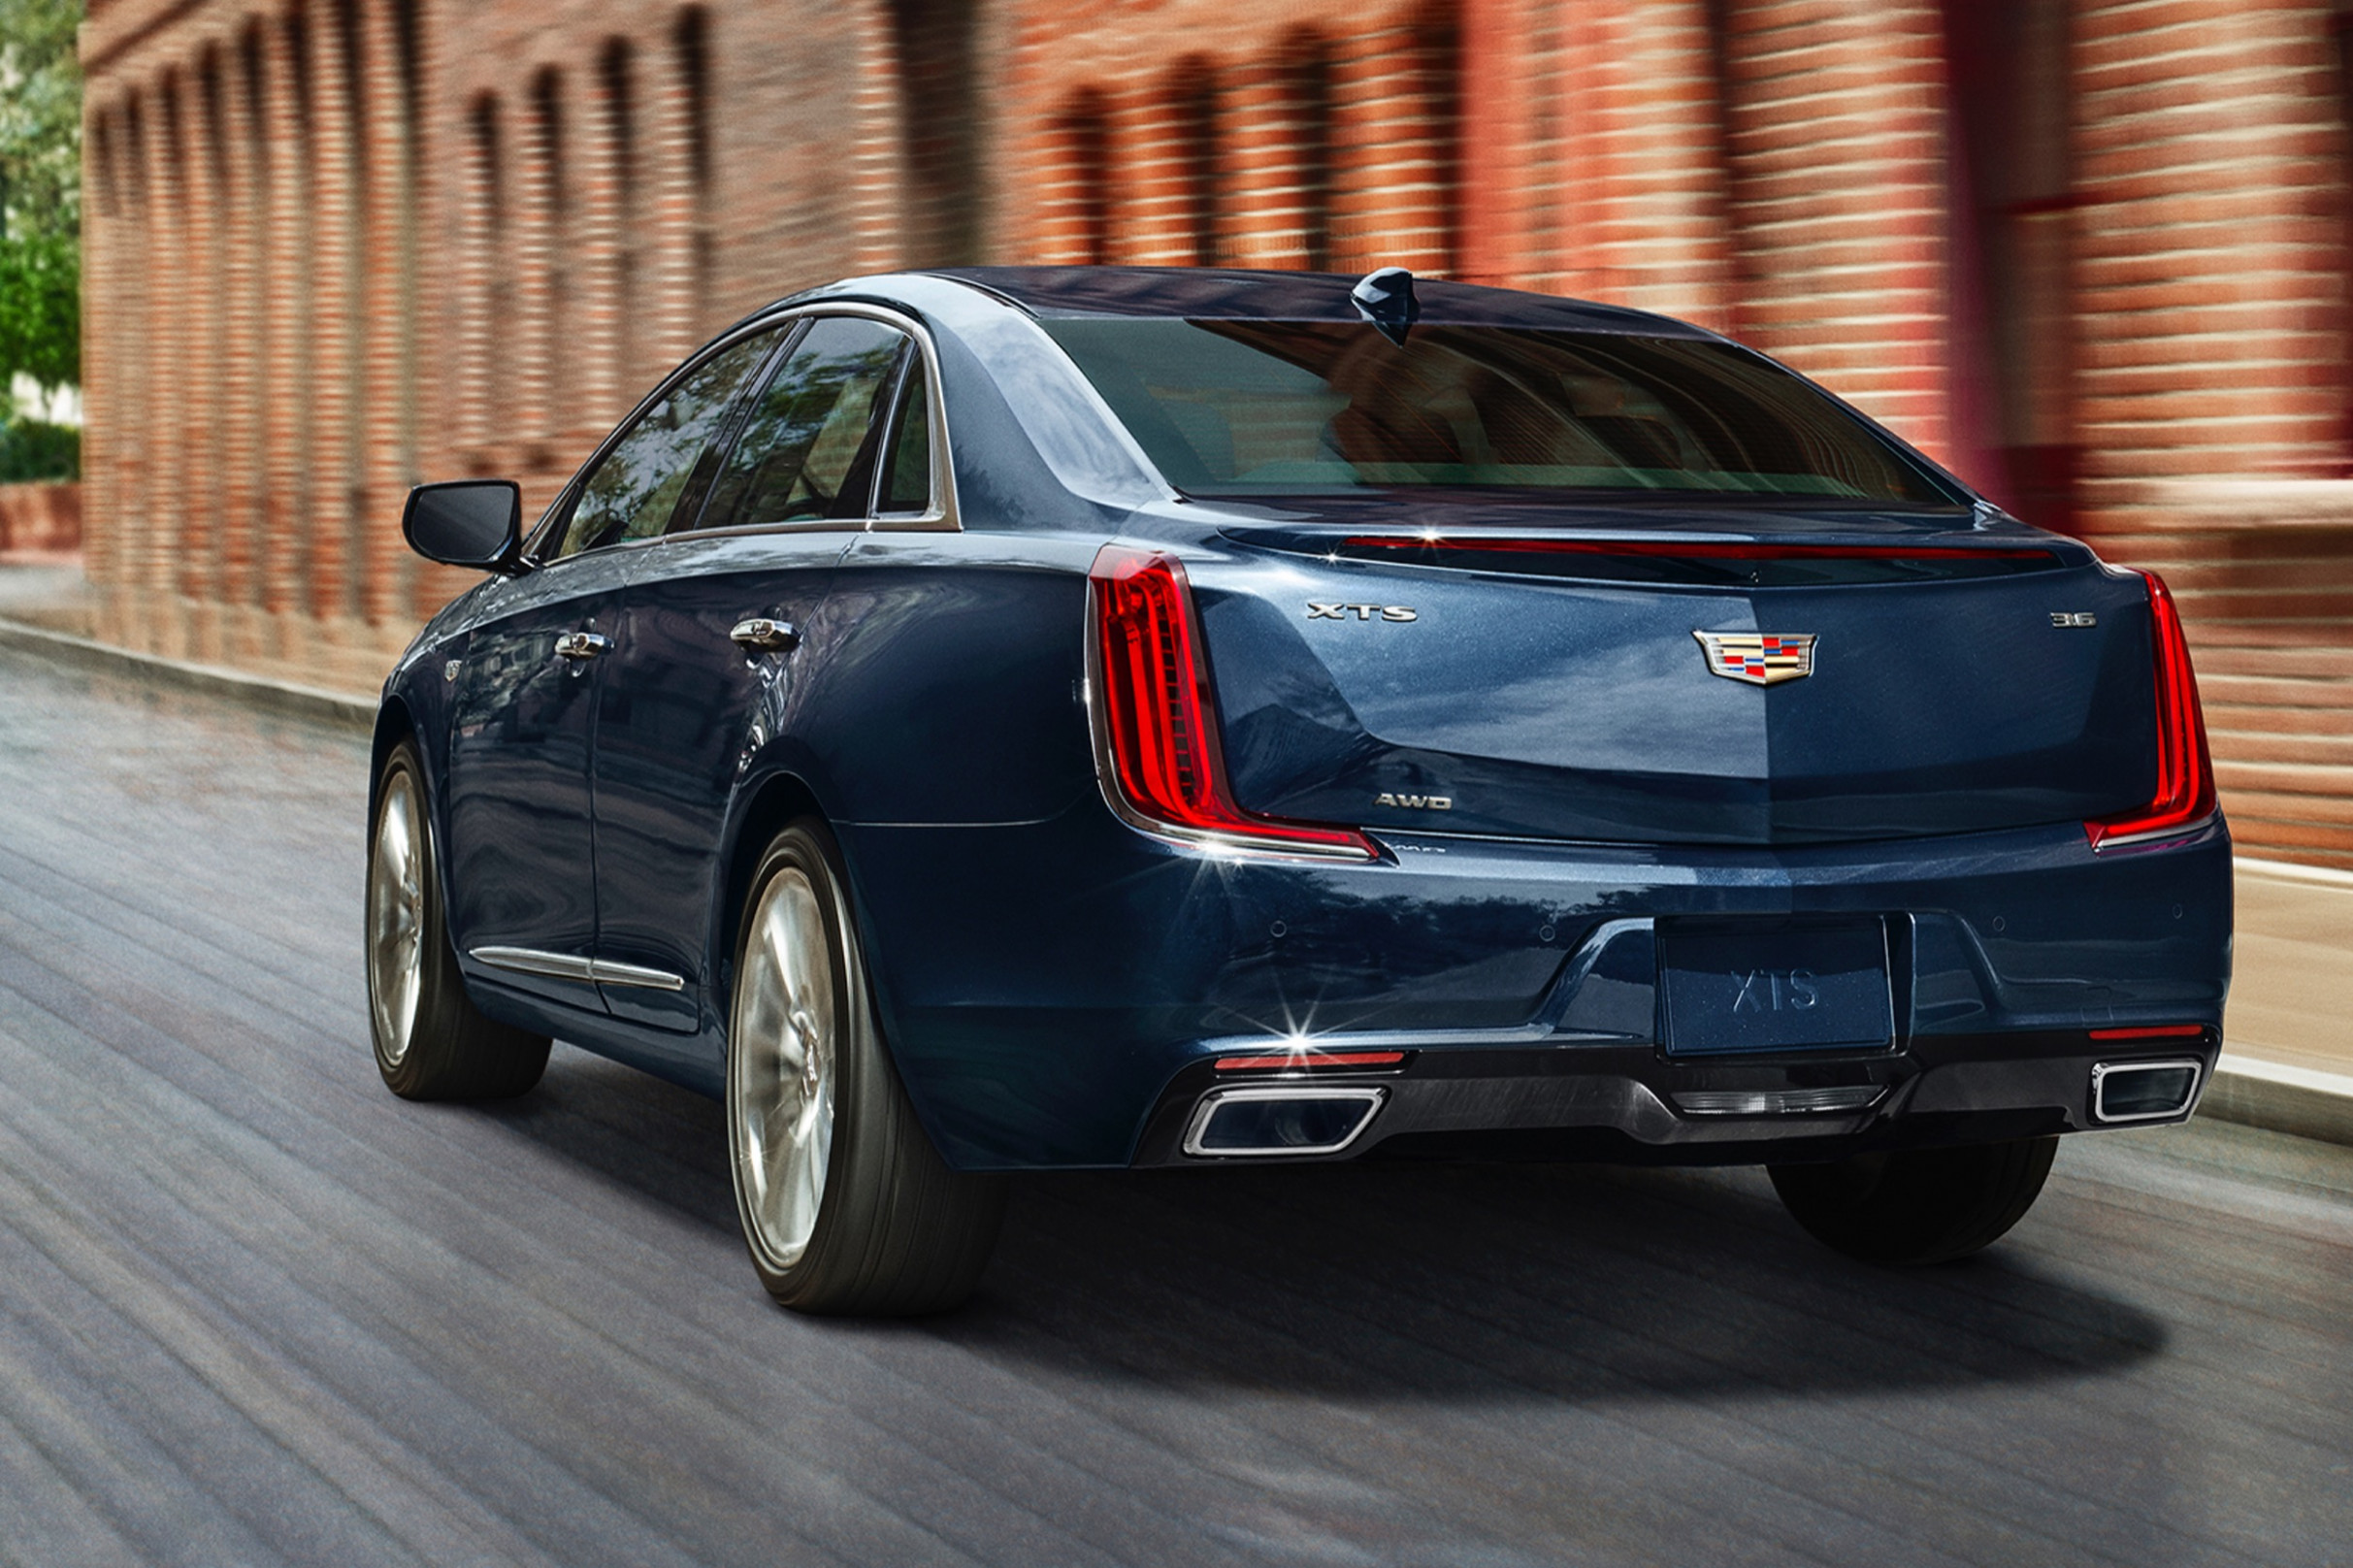 8 Cadillac XTS Info, Pictures, Specs, Wiki | GM Authority